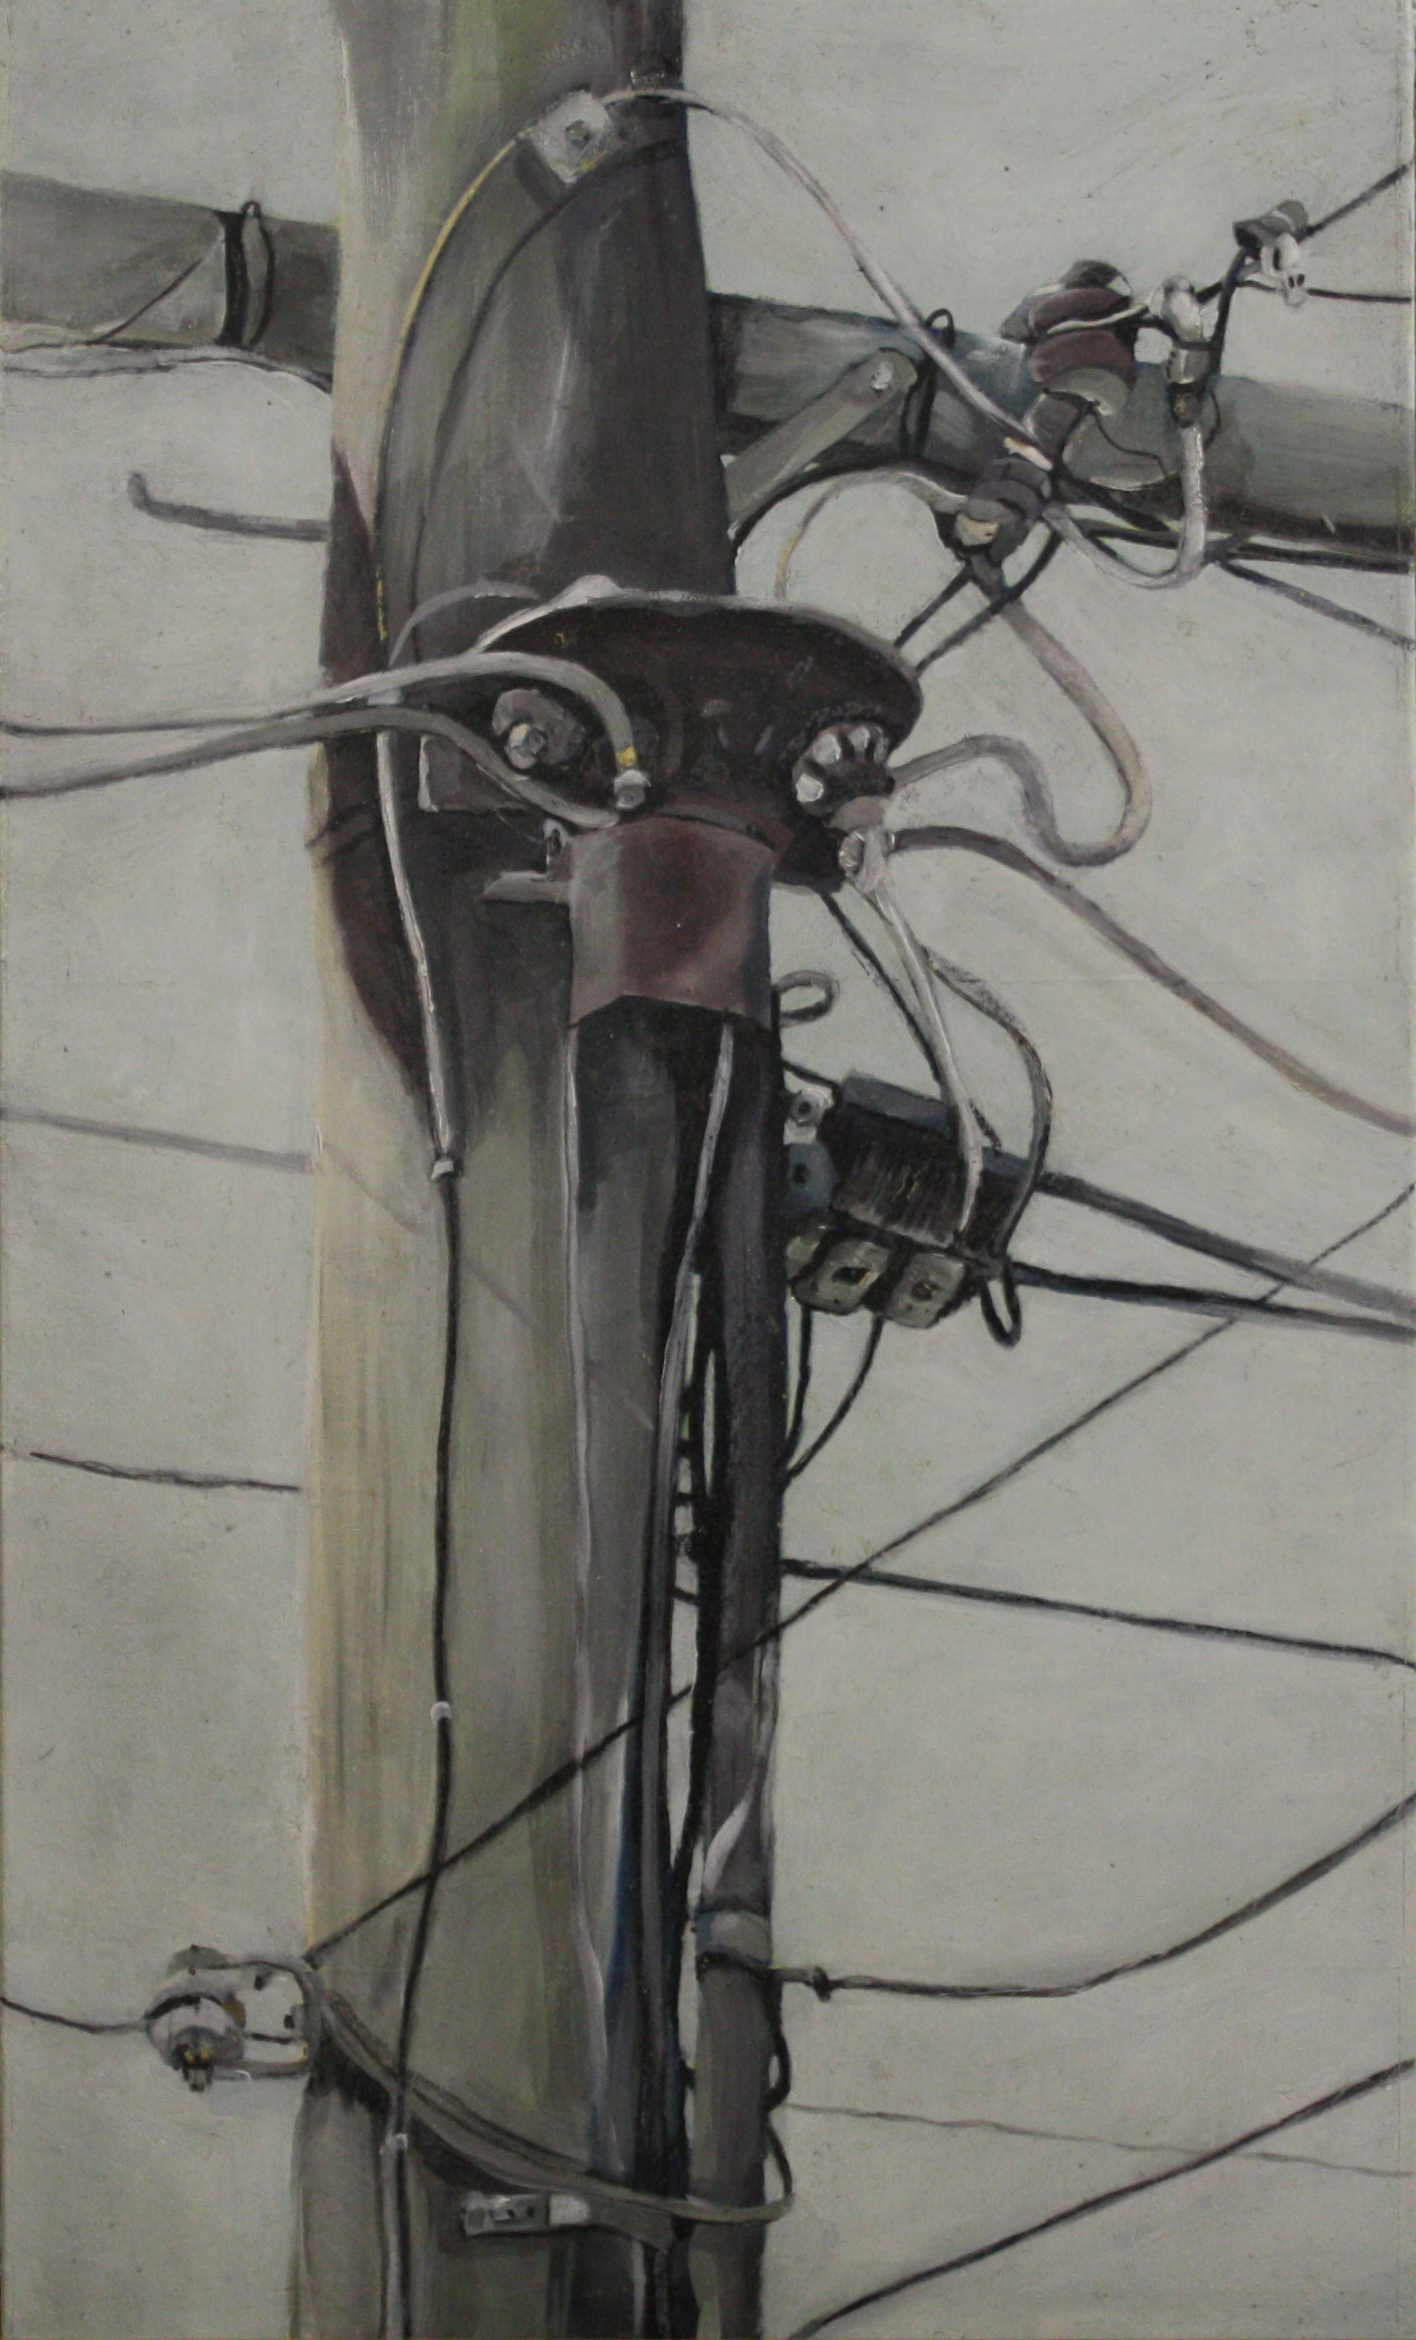 Components:  24712   2011,oil on canvas on hardboard  50 x 76 cm